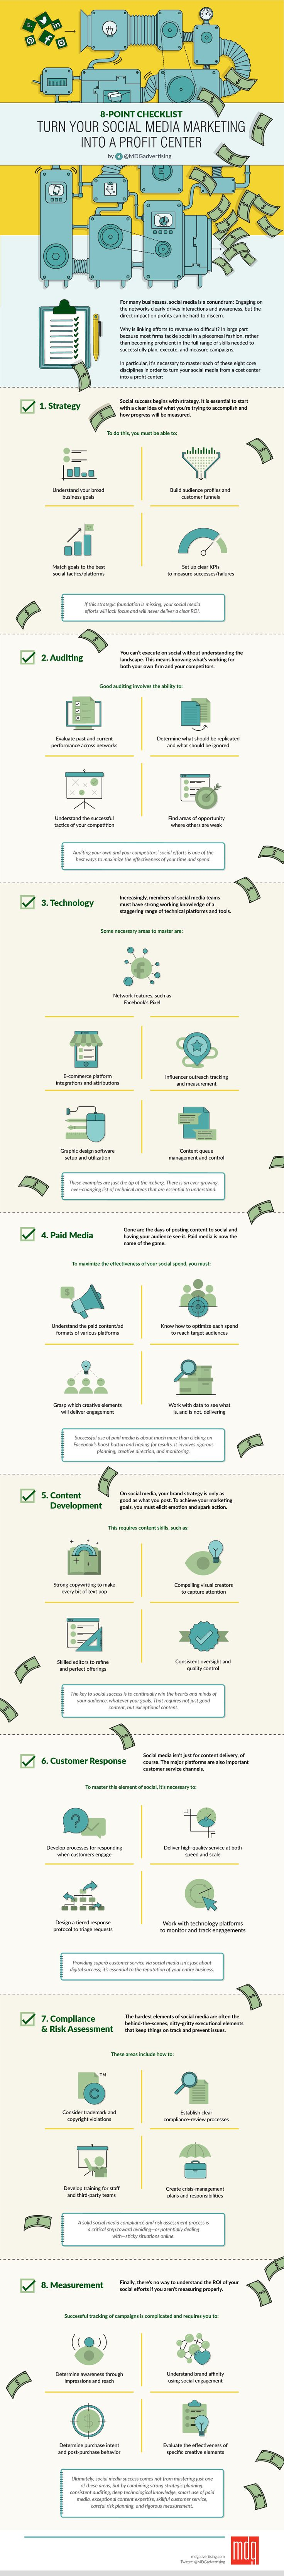 8-Point Checklist: Turn Your Social Media Marketing Into a Profit Center #Infographic #Marketing #SocialMedia